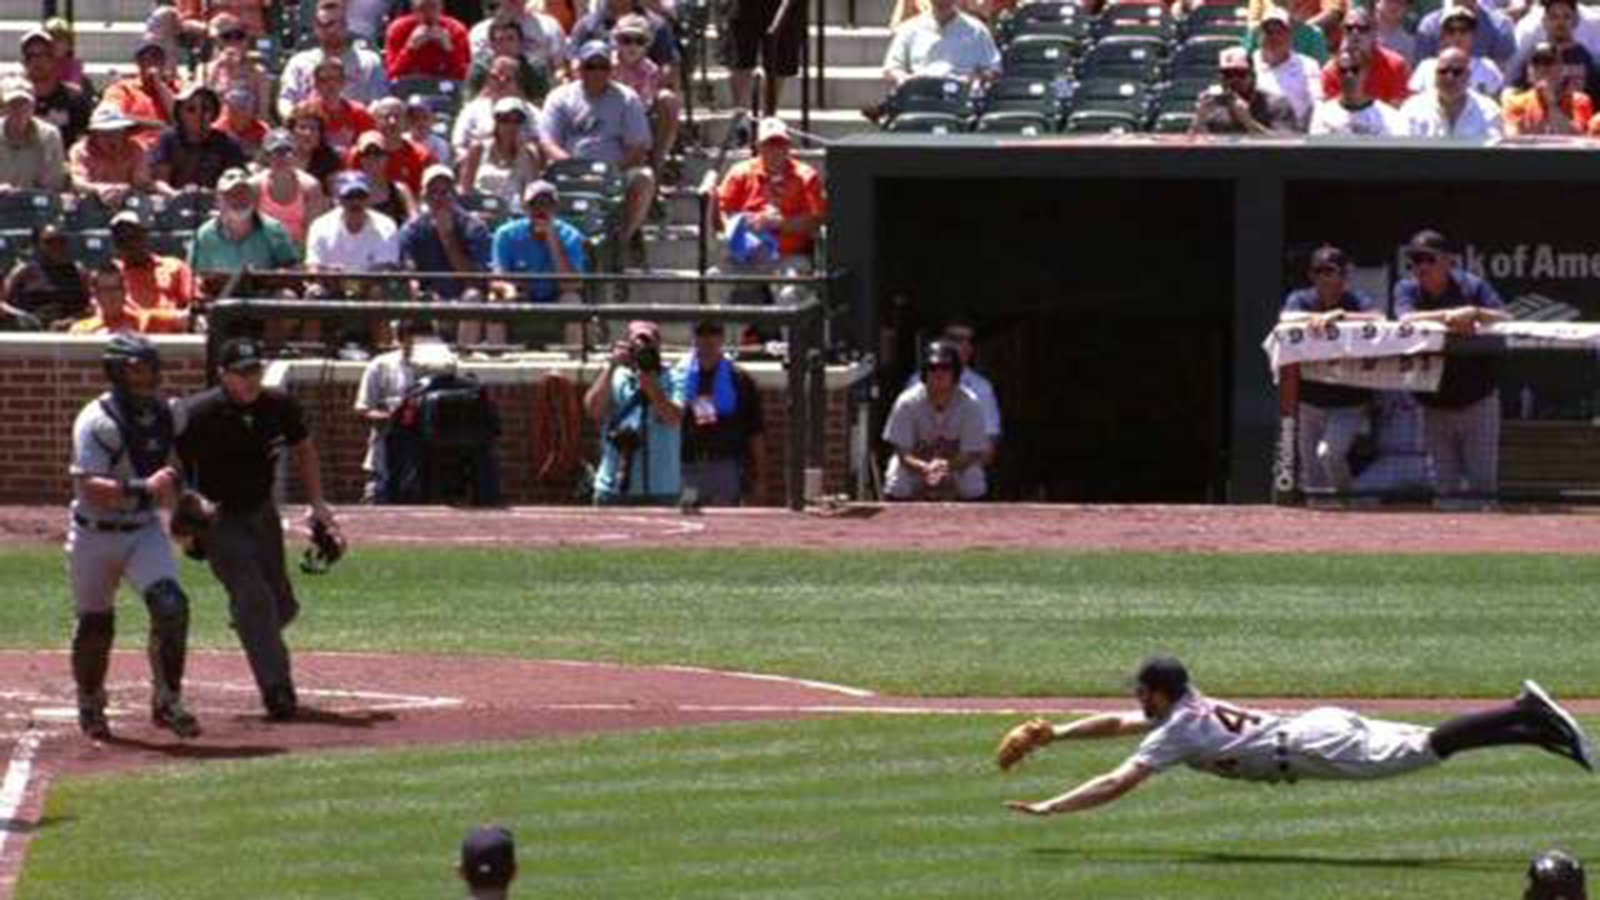 Tigers' Daniel Norris makes great diving catch (VIDEO)